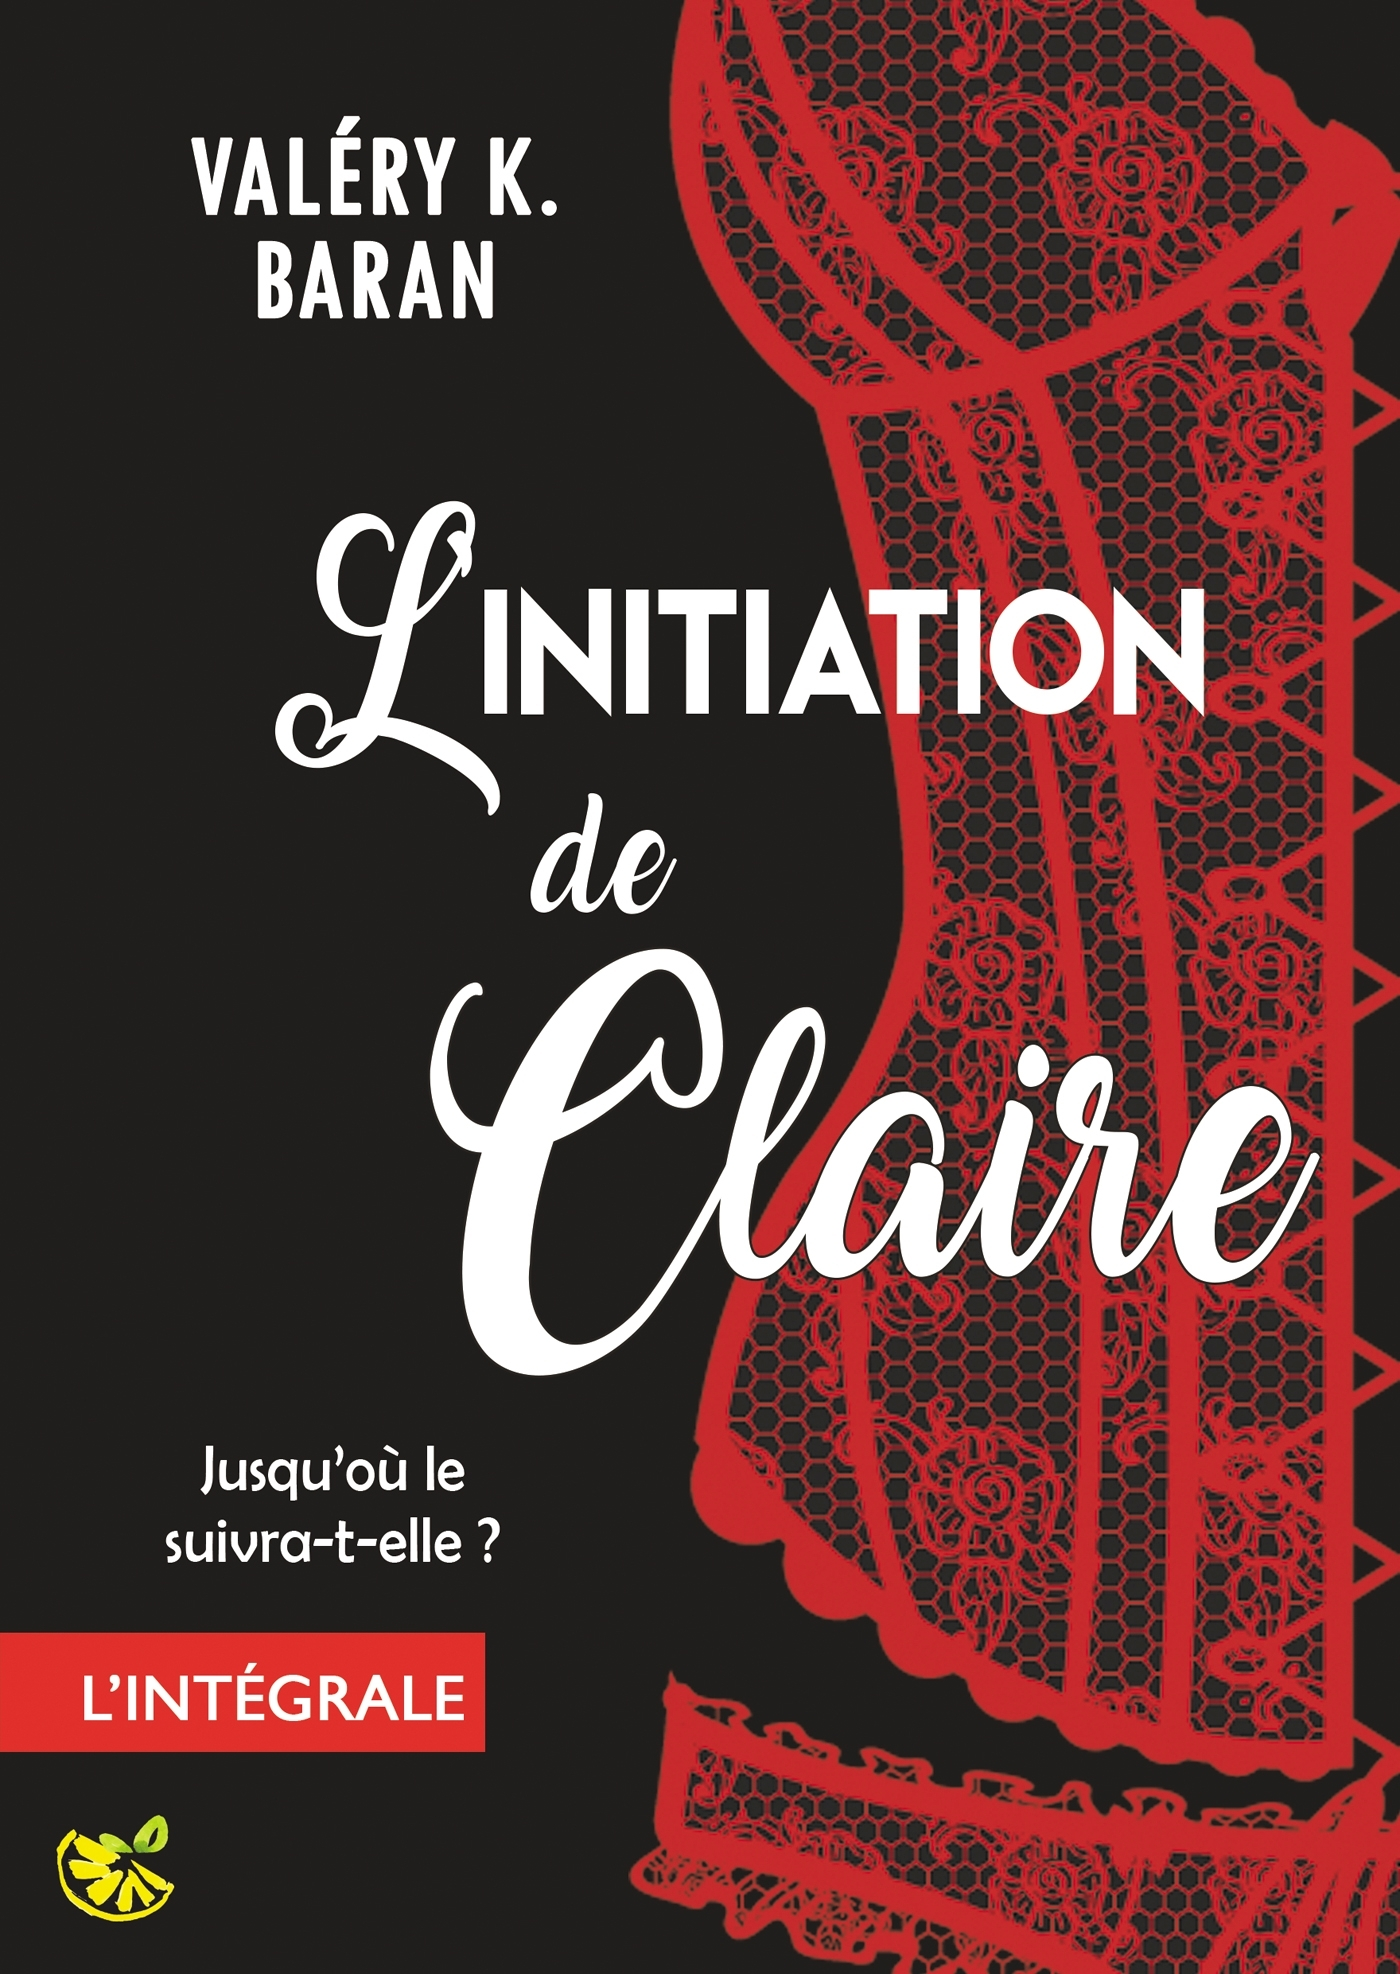 L'INITIATION DE CLAIRE - L'INTEGRALE - ENFIN L'INTEGRALE DE LA SERIE DE ROMANCE EROTIQUE BDSM